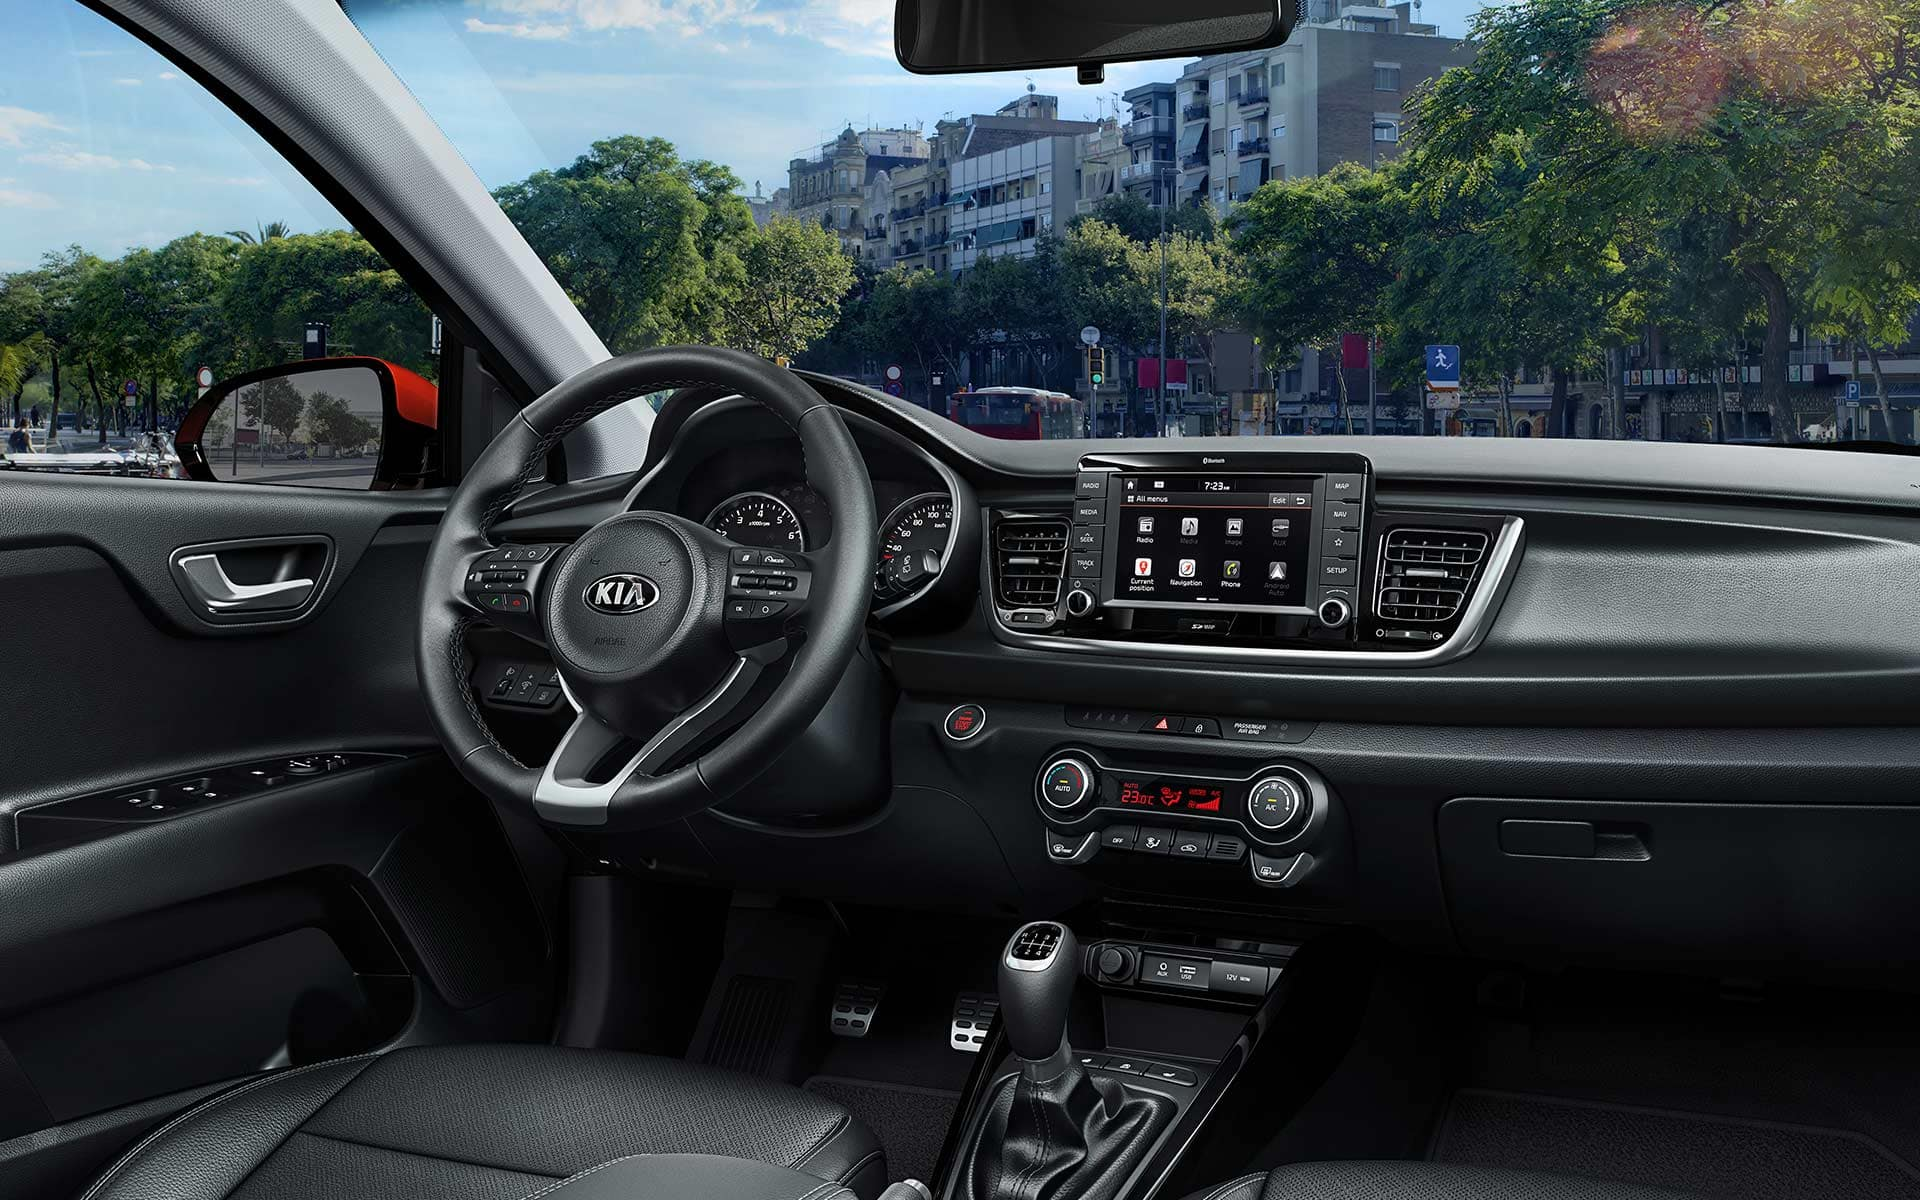 Kia Rio comfortable and smart interior